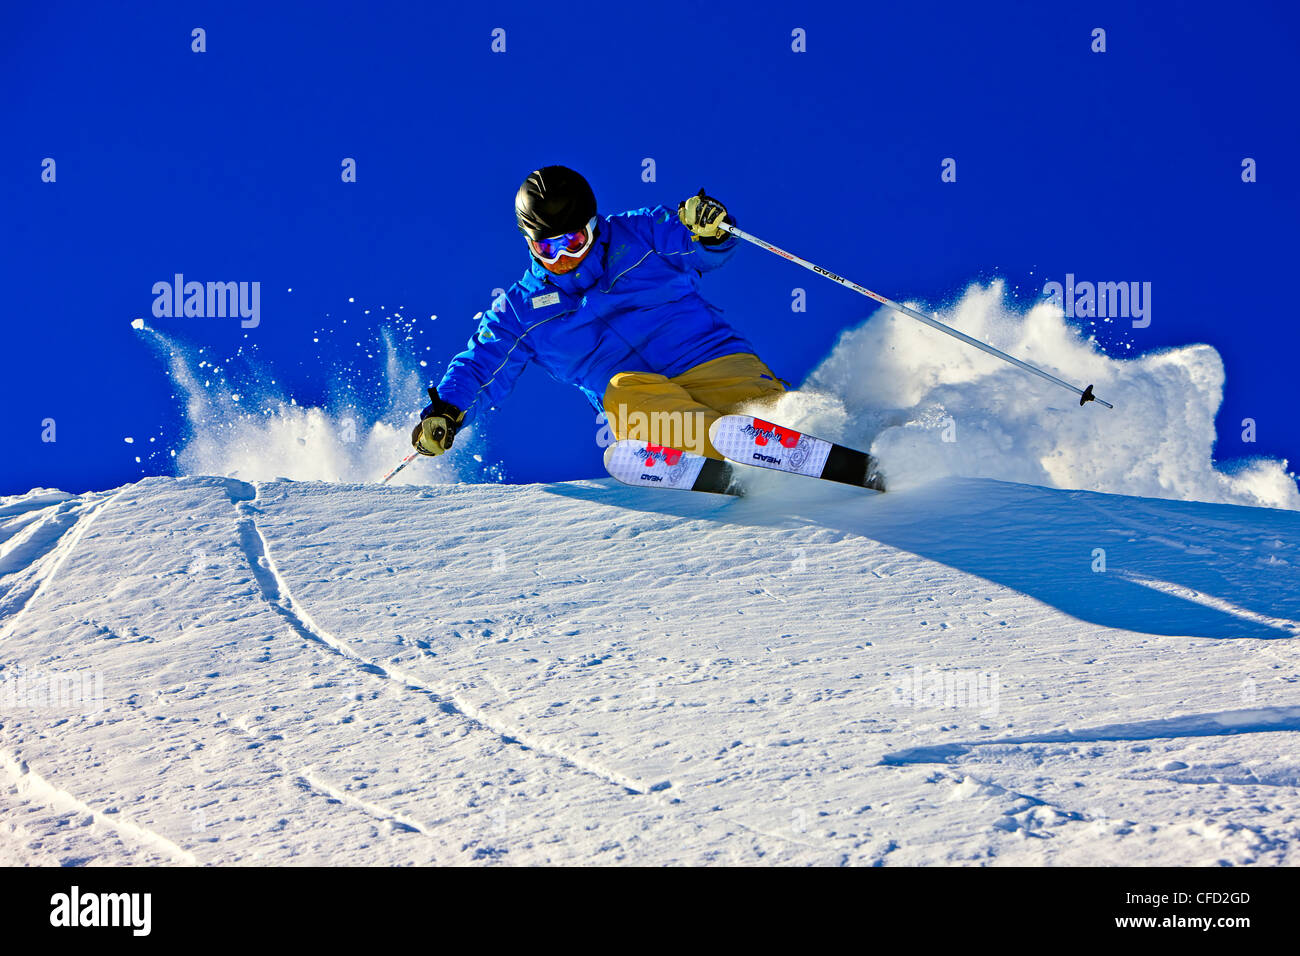 Skier on the upper slopes of Whistler Mountain, Whistler Blackcomb, Whistler, British Columbia, Canada. - Stock Image